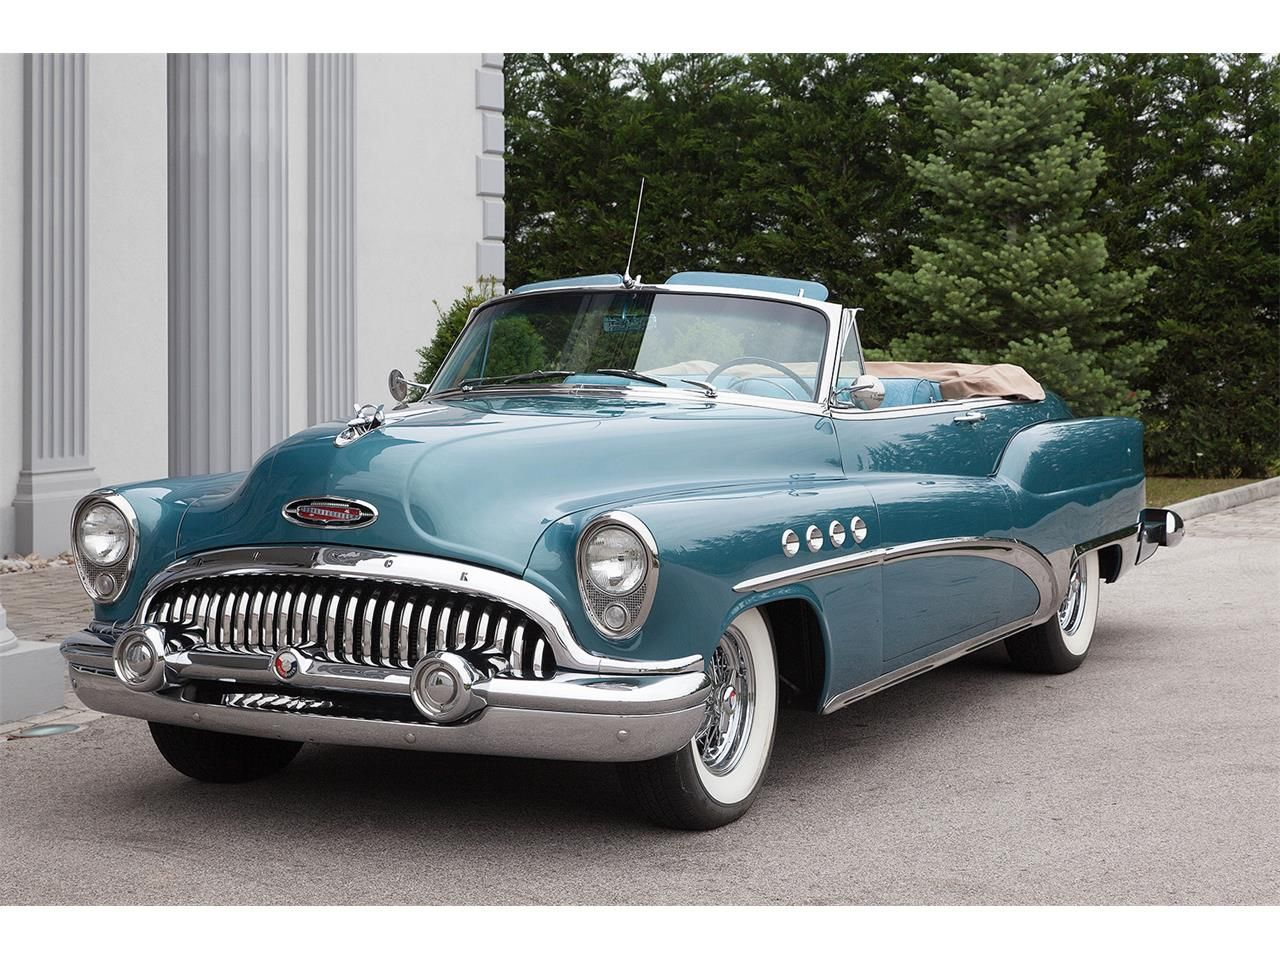 Pin By Jorge Remedios On Cars In 2020 Buick Roadmaster Buick Classic Cars Vintage